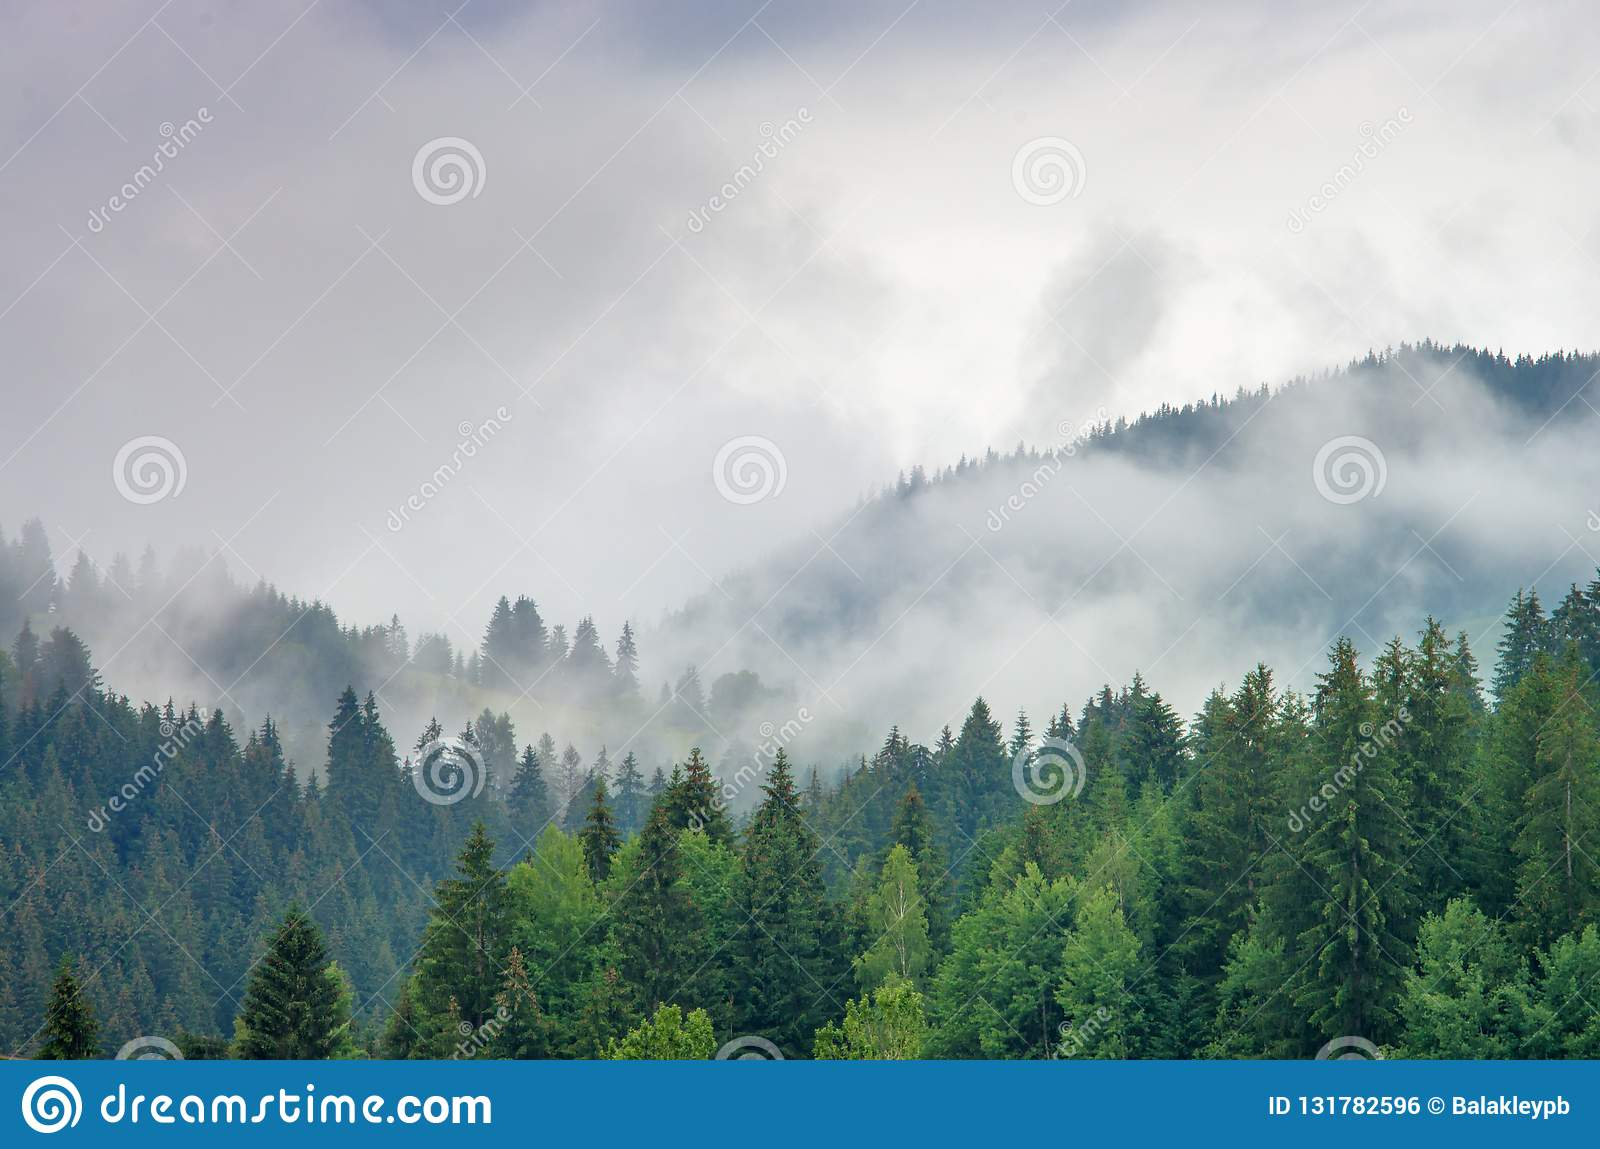 Fog in the forest of pine trees in the mountains